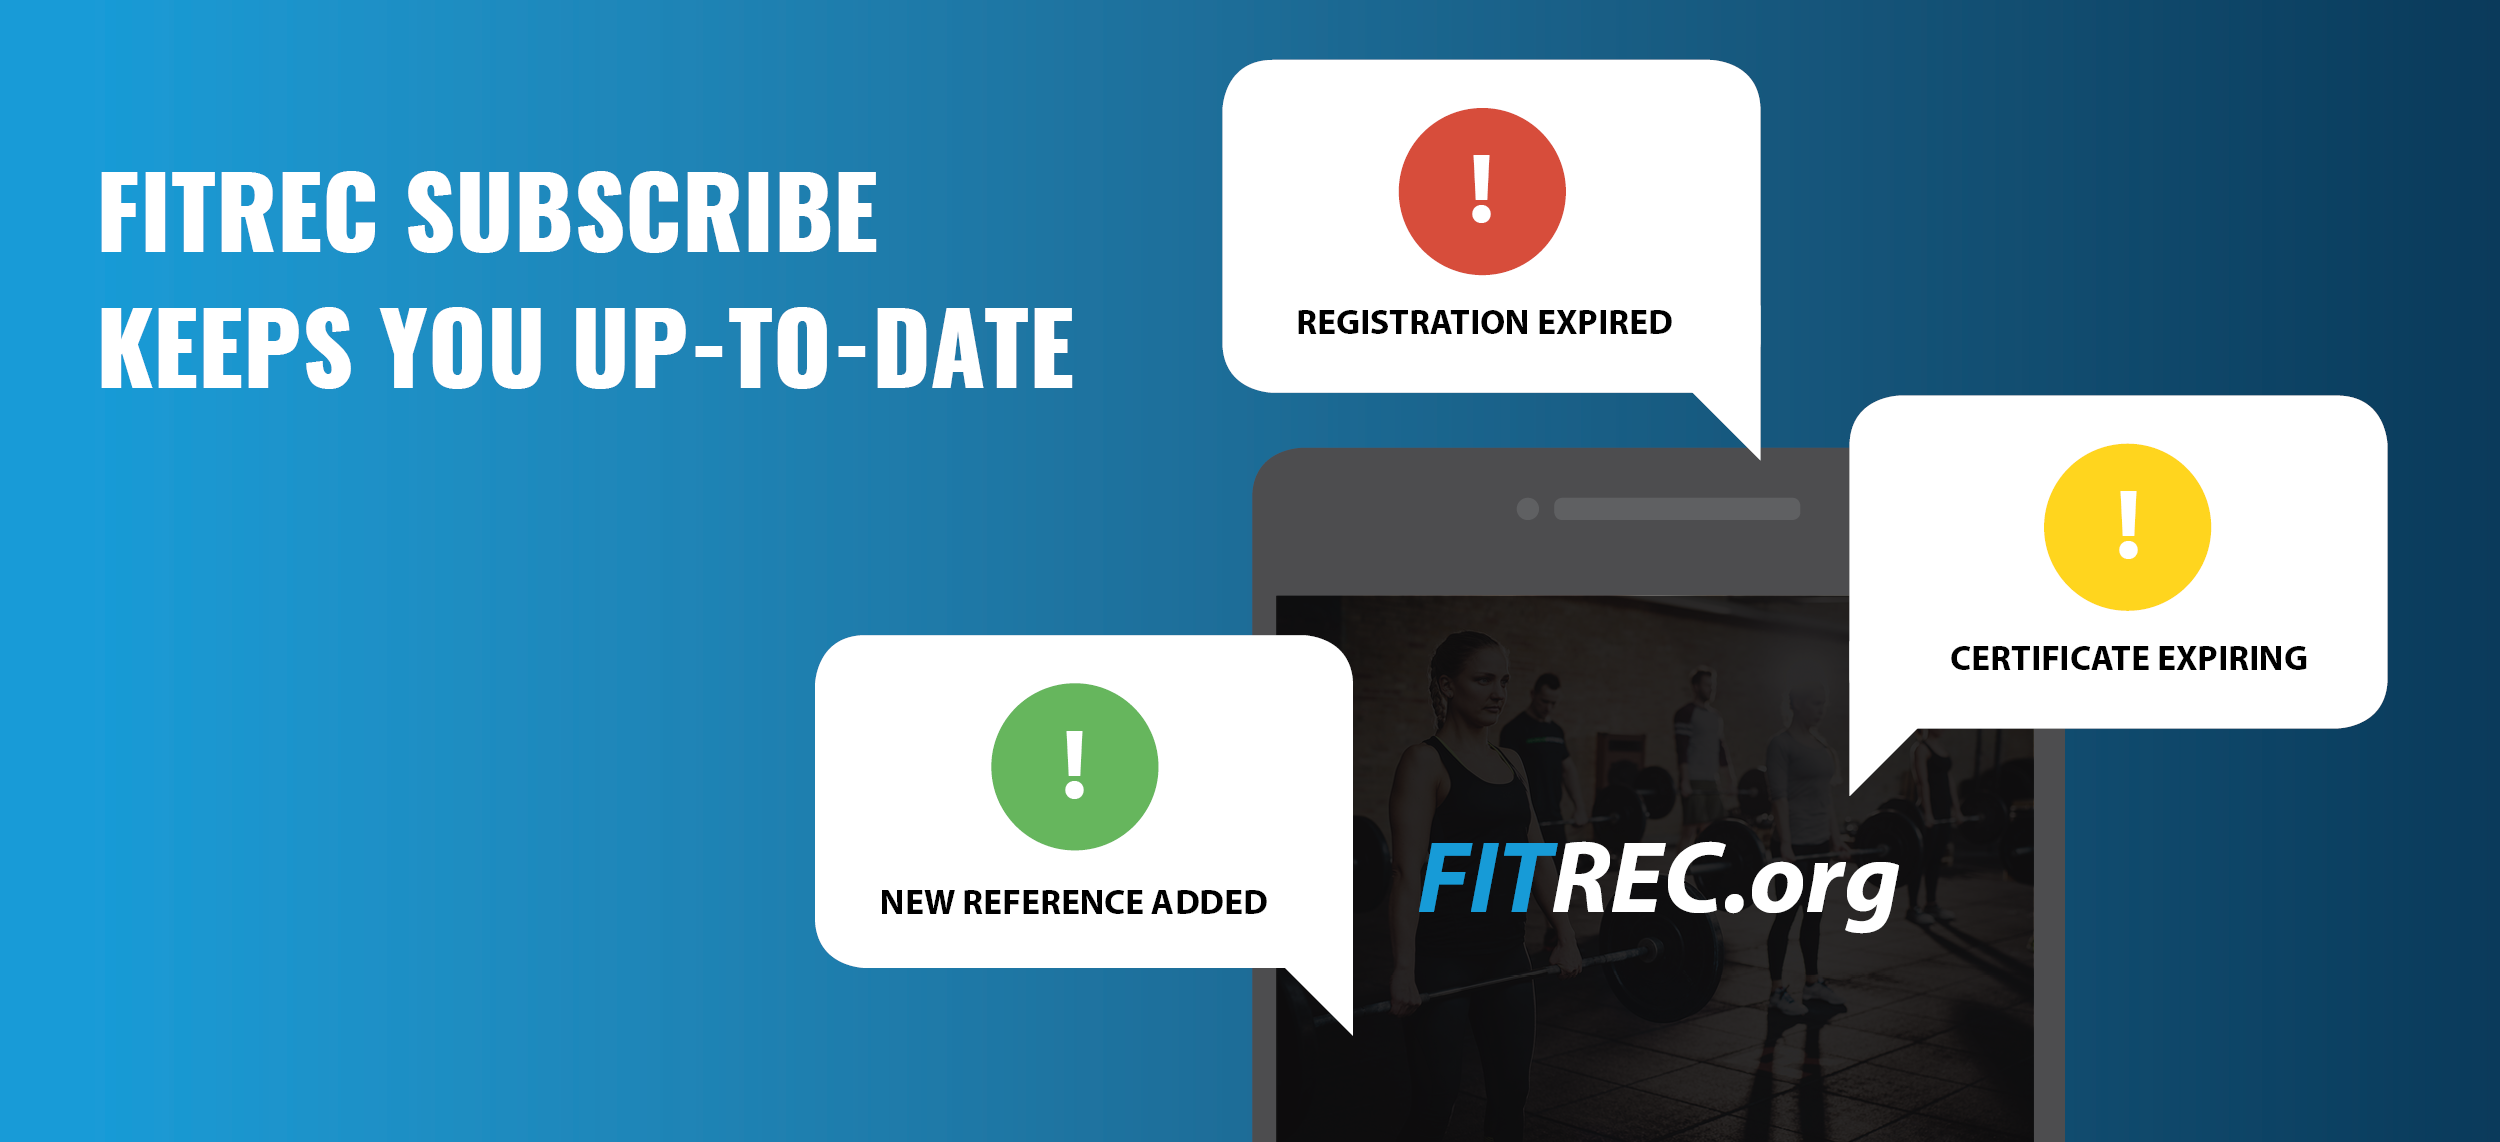 FITREC-Subscribe